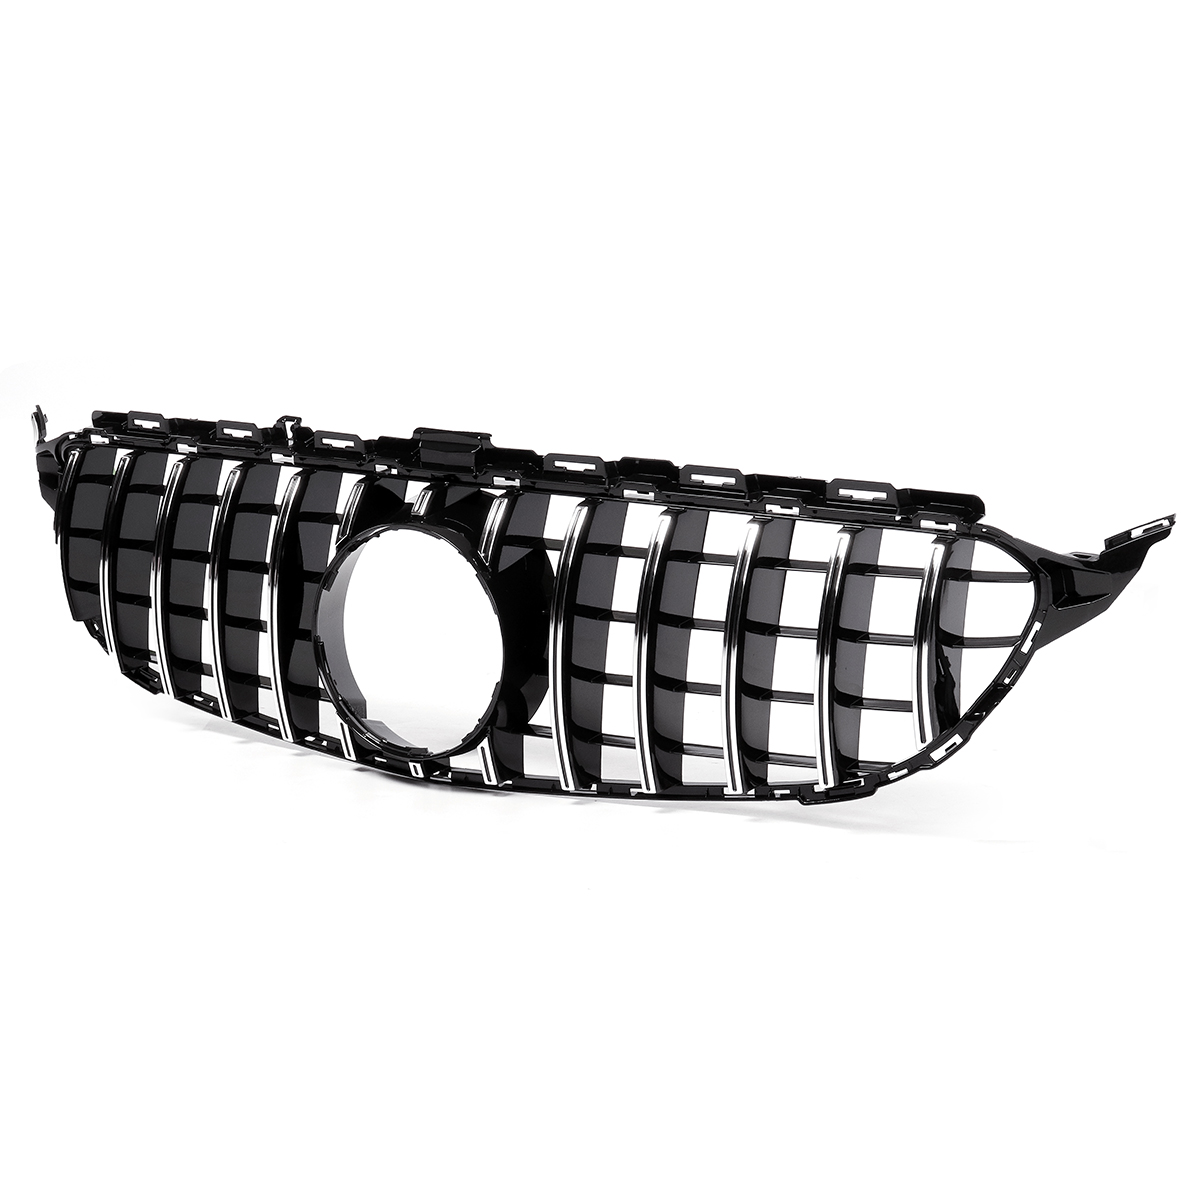 High quality Car Grille Grills Car Front Bumper Mesh For Mercedes For Benz W205 For AMG Look C200 C250 C300 C350 2015-2018High quality Car Grille Grills Car Front Bumper Mesh For Mercedes For Benz W205 For AMG Look C200 C250 C300 C350 2015-2018